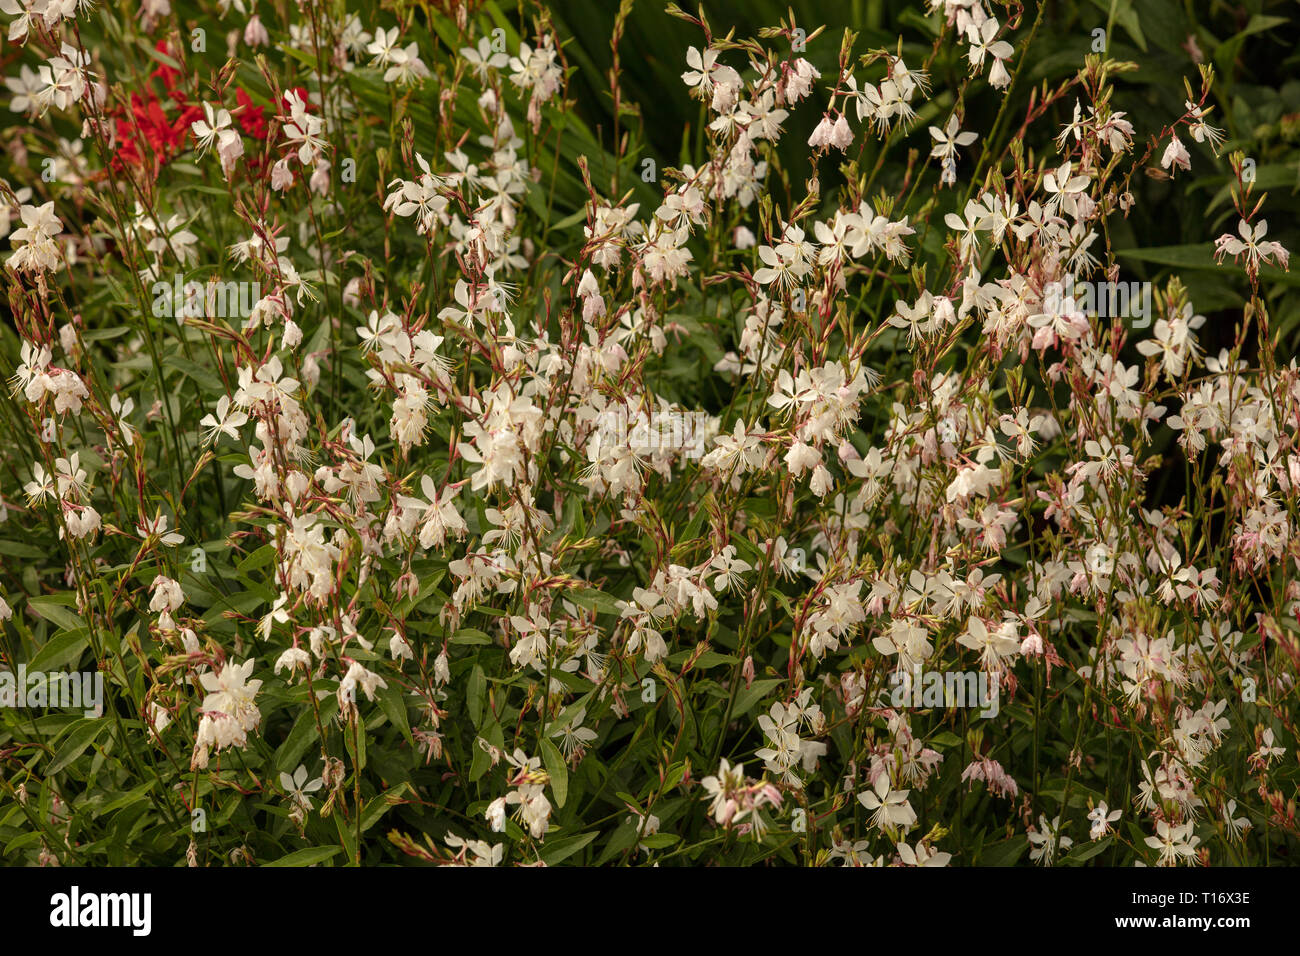 White flowers of the long flowering plants Gaura Whirling Butterflies, which are easy to grow in our gardens. Stock Photo